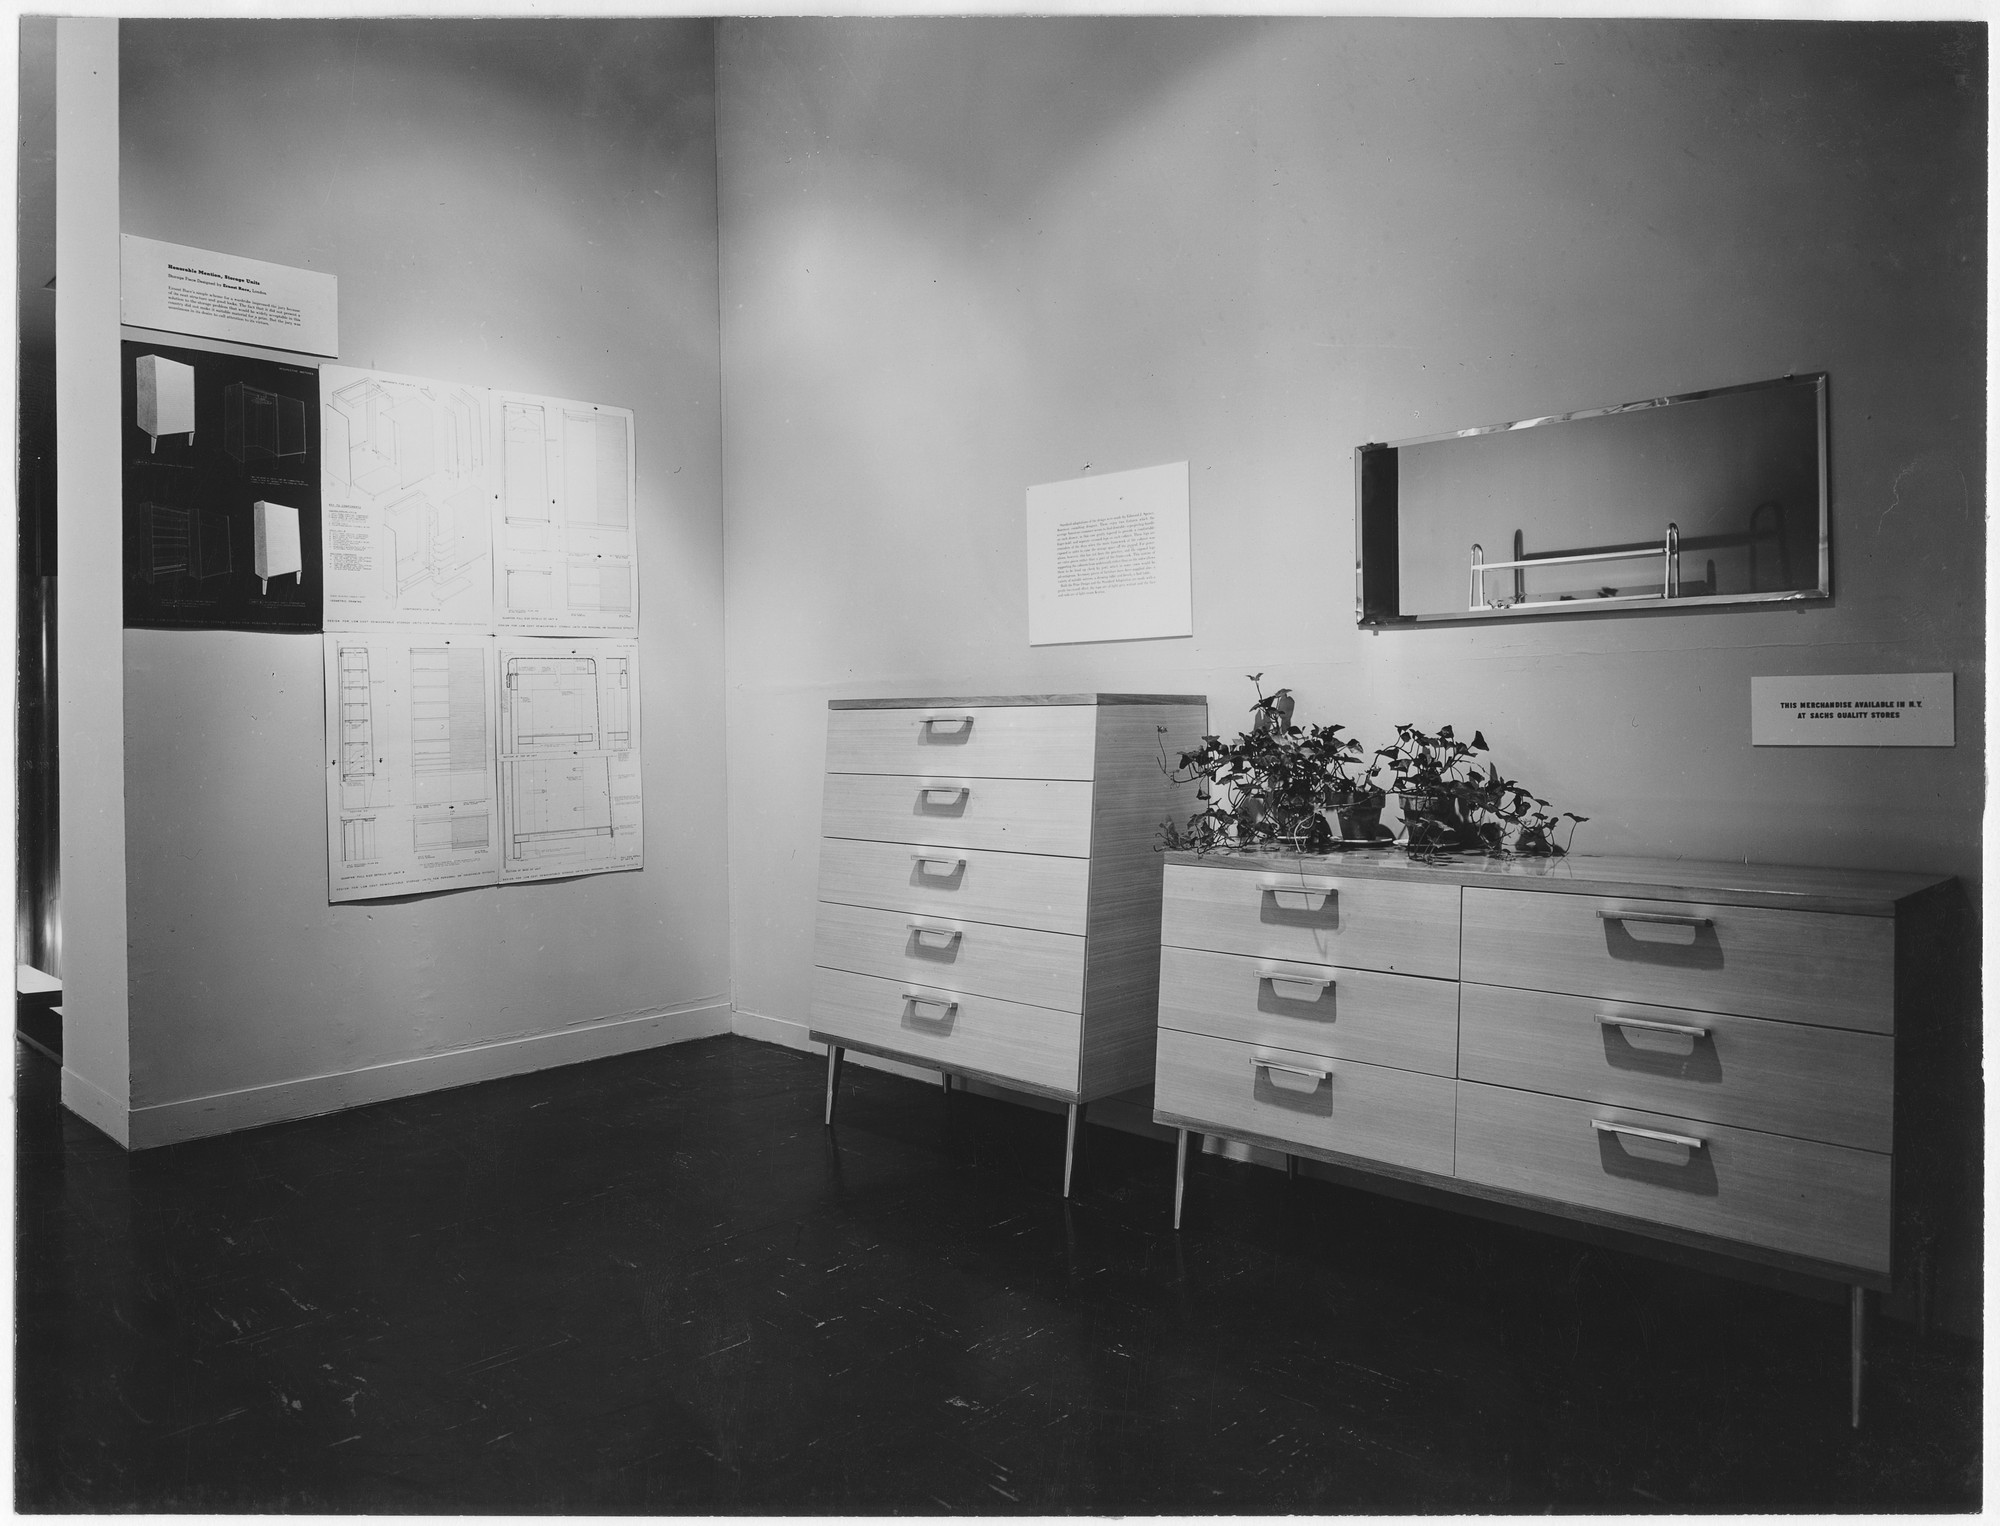 "Installation view of the exhibition, ""Prize Design for Modern Furniture."" May 16, 1950–July 16, 1950. Photographic Archive. The Museum of Modern Art Archives, New York. IN446.1. Photograph by Soichi Sunami."